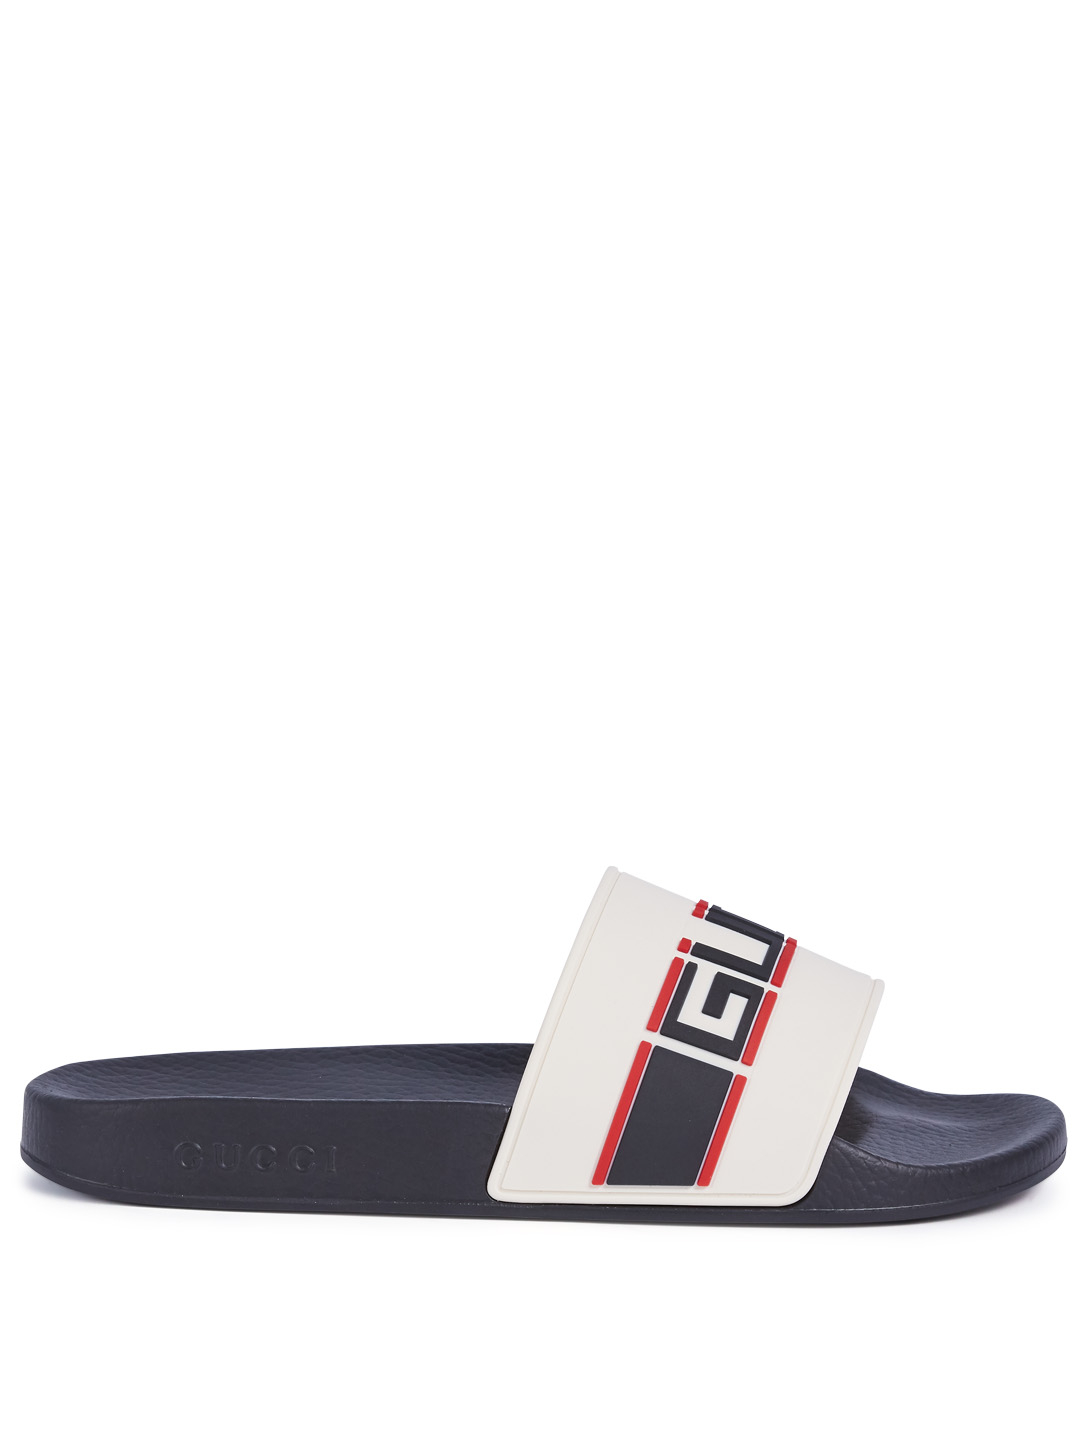 49b2625bad960 GUCCI Pursuit Pool Slides With Logo